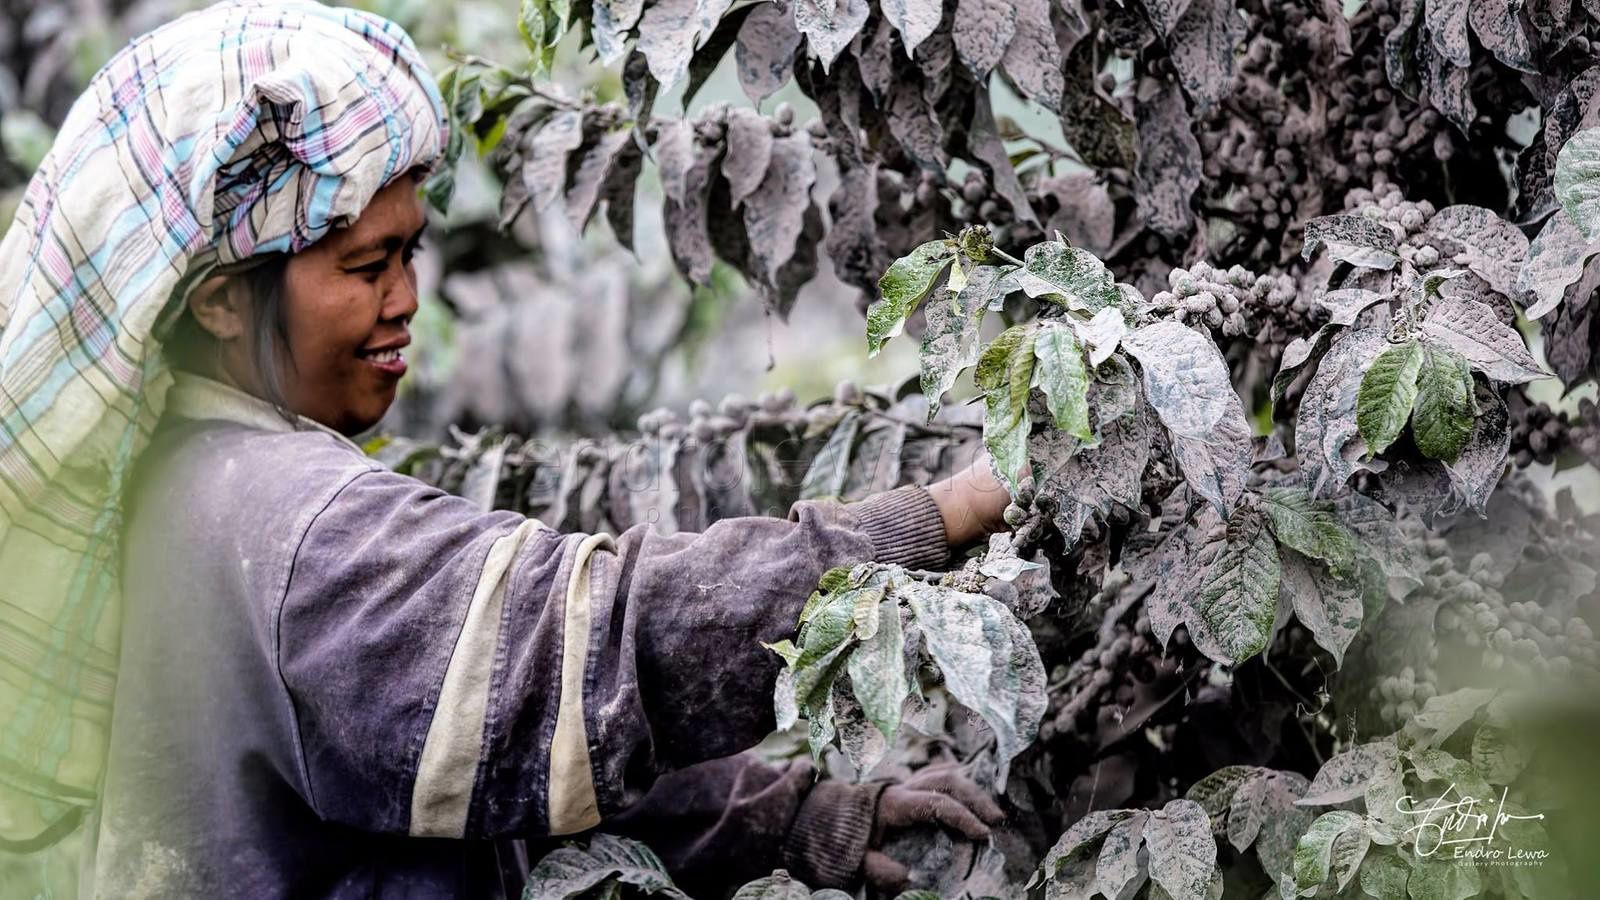 Sinabung - Adults working in fields without wearing masks - Photo Endro Lewa